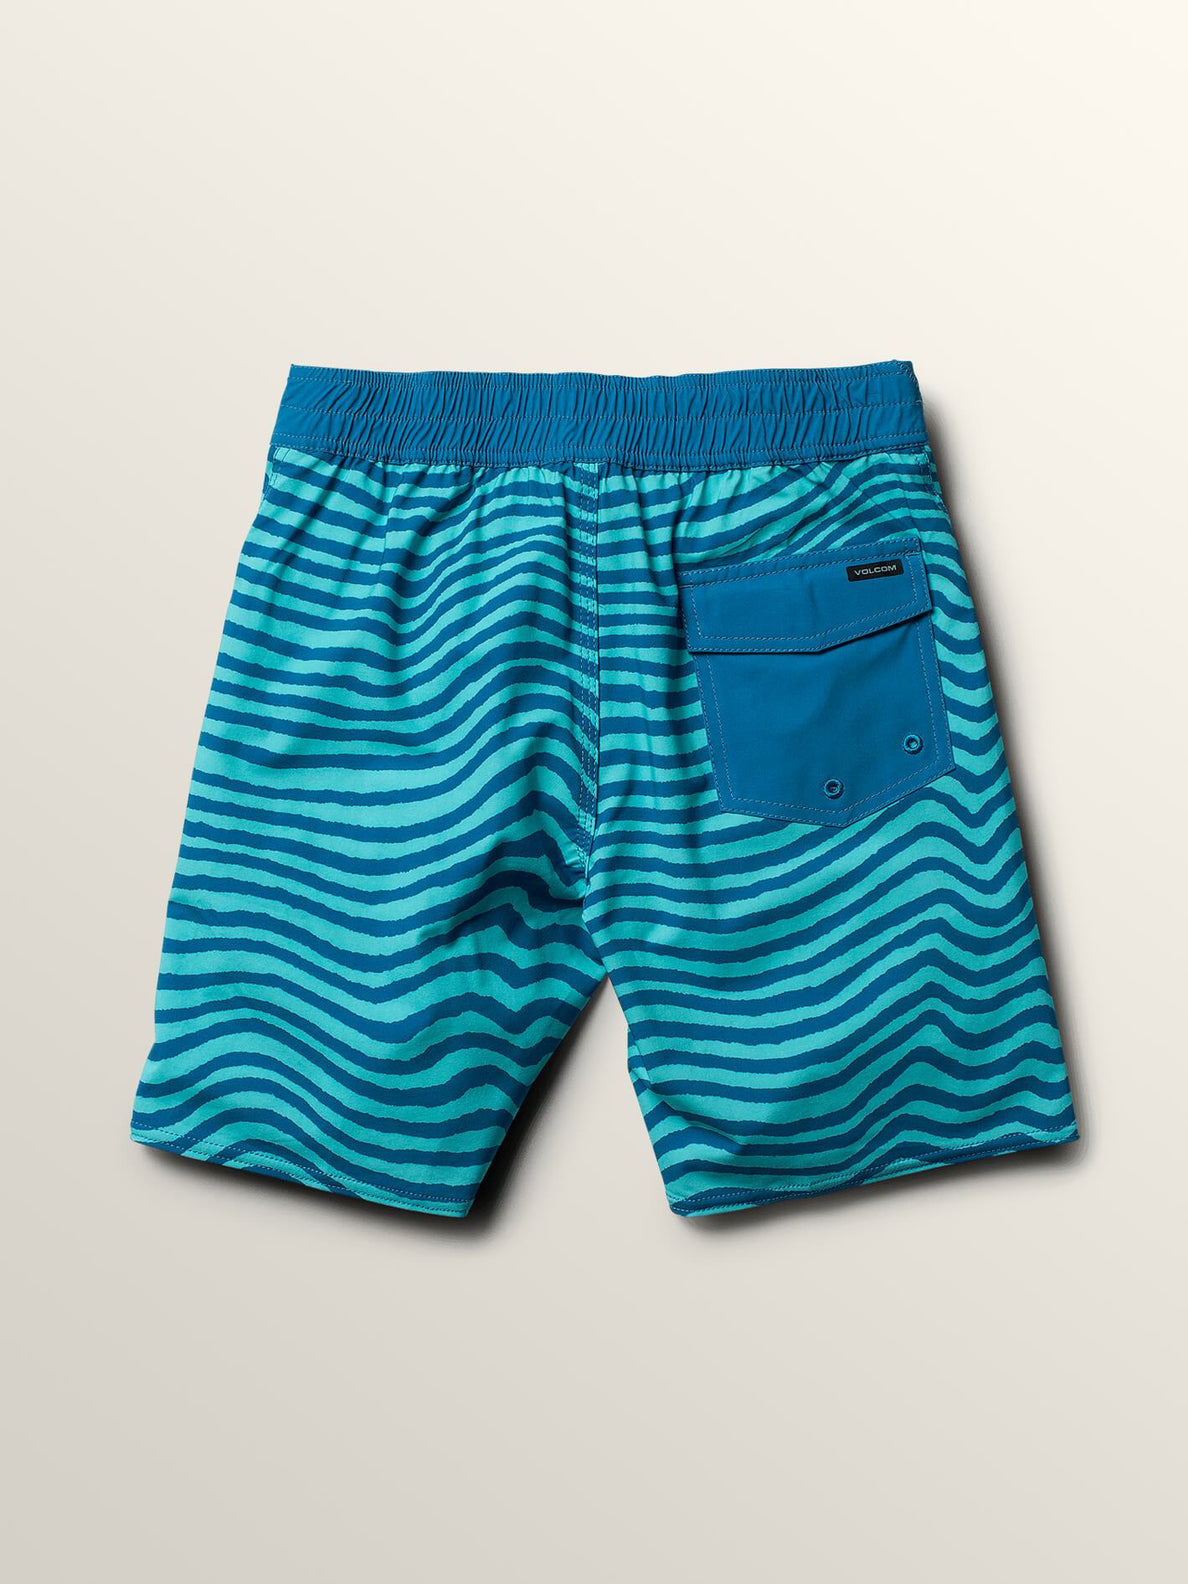 Big Boys Mag Vibes Elastic Boardshorts In Bright Turquoise, Back View